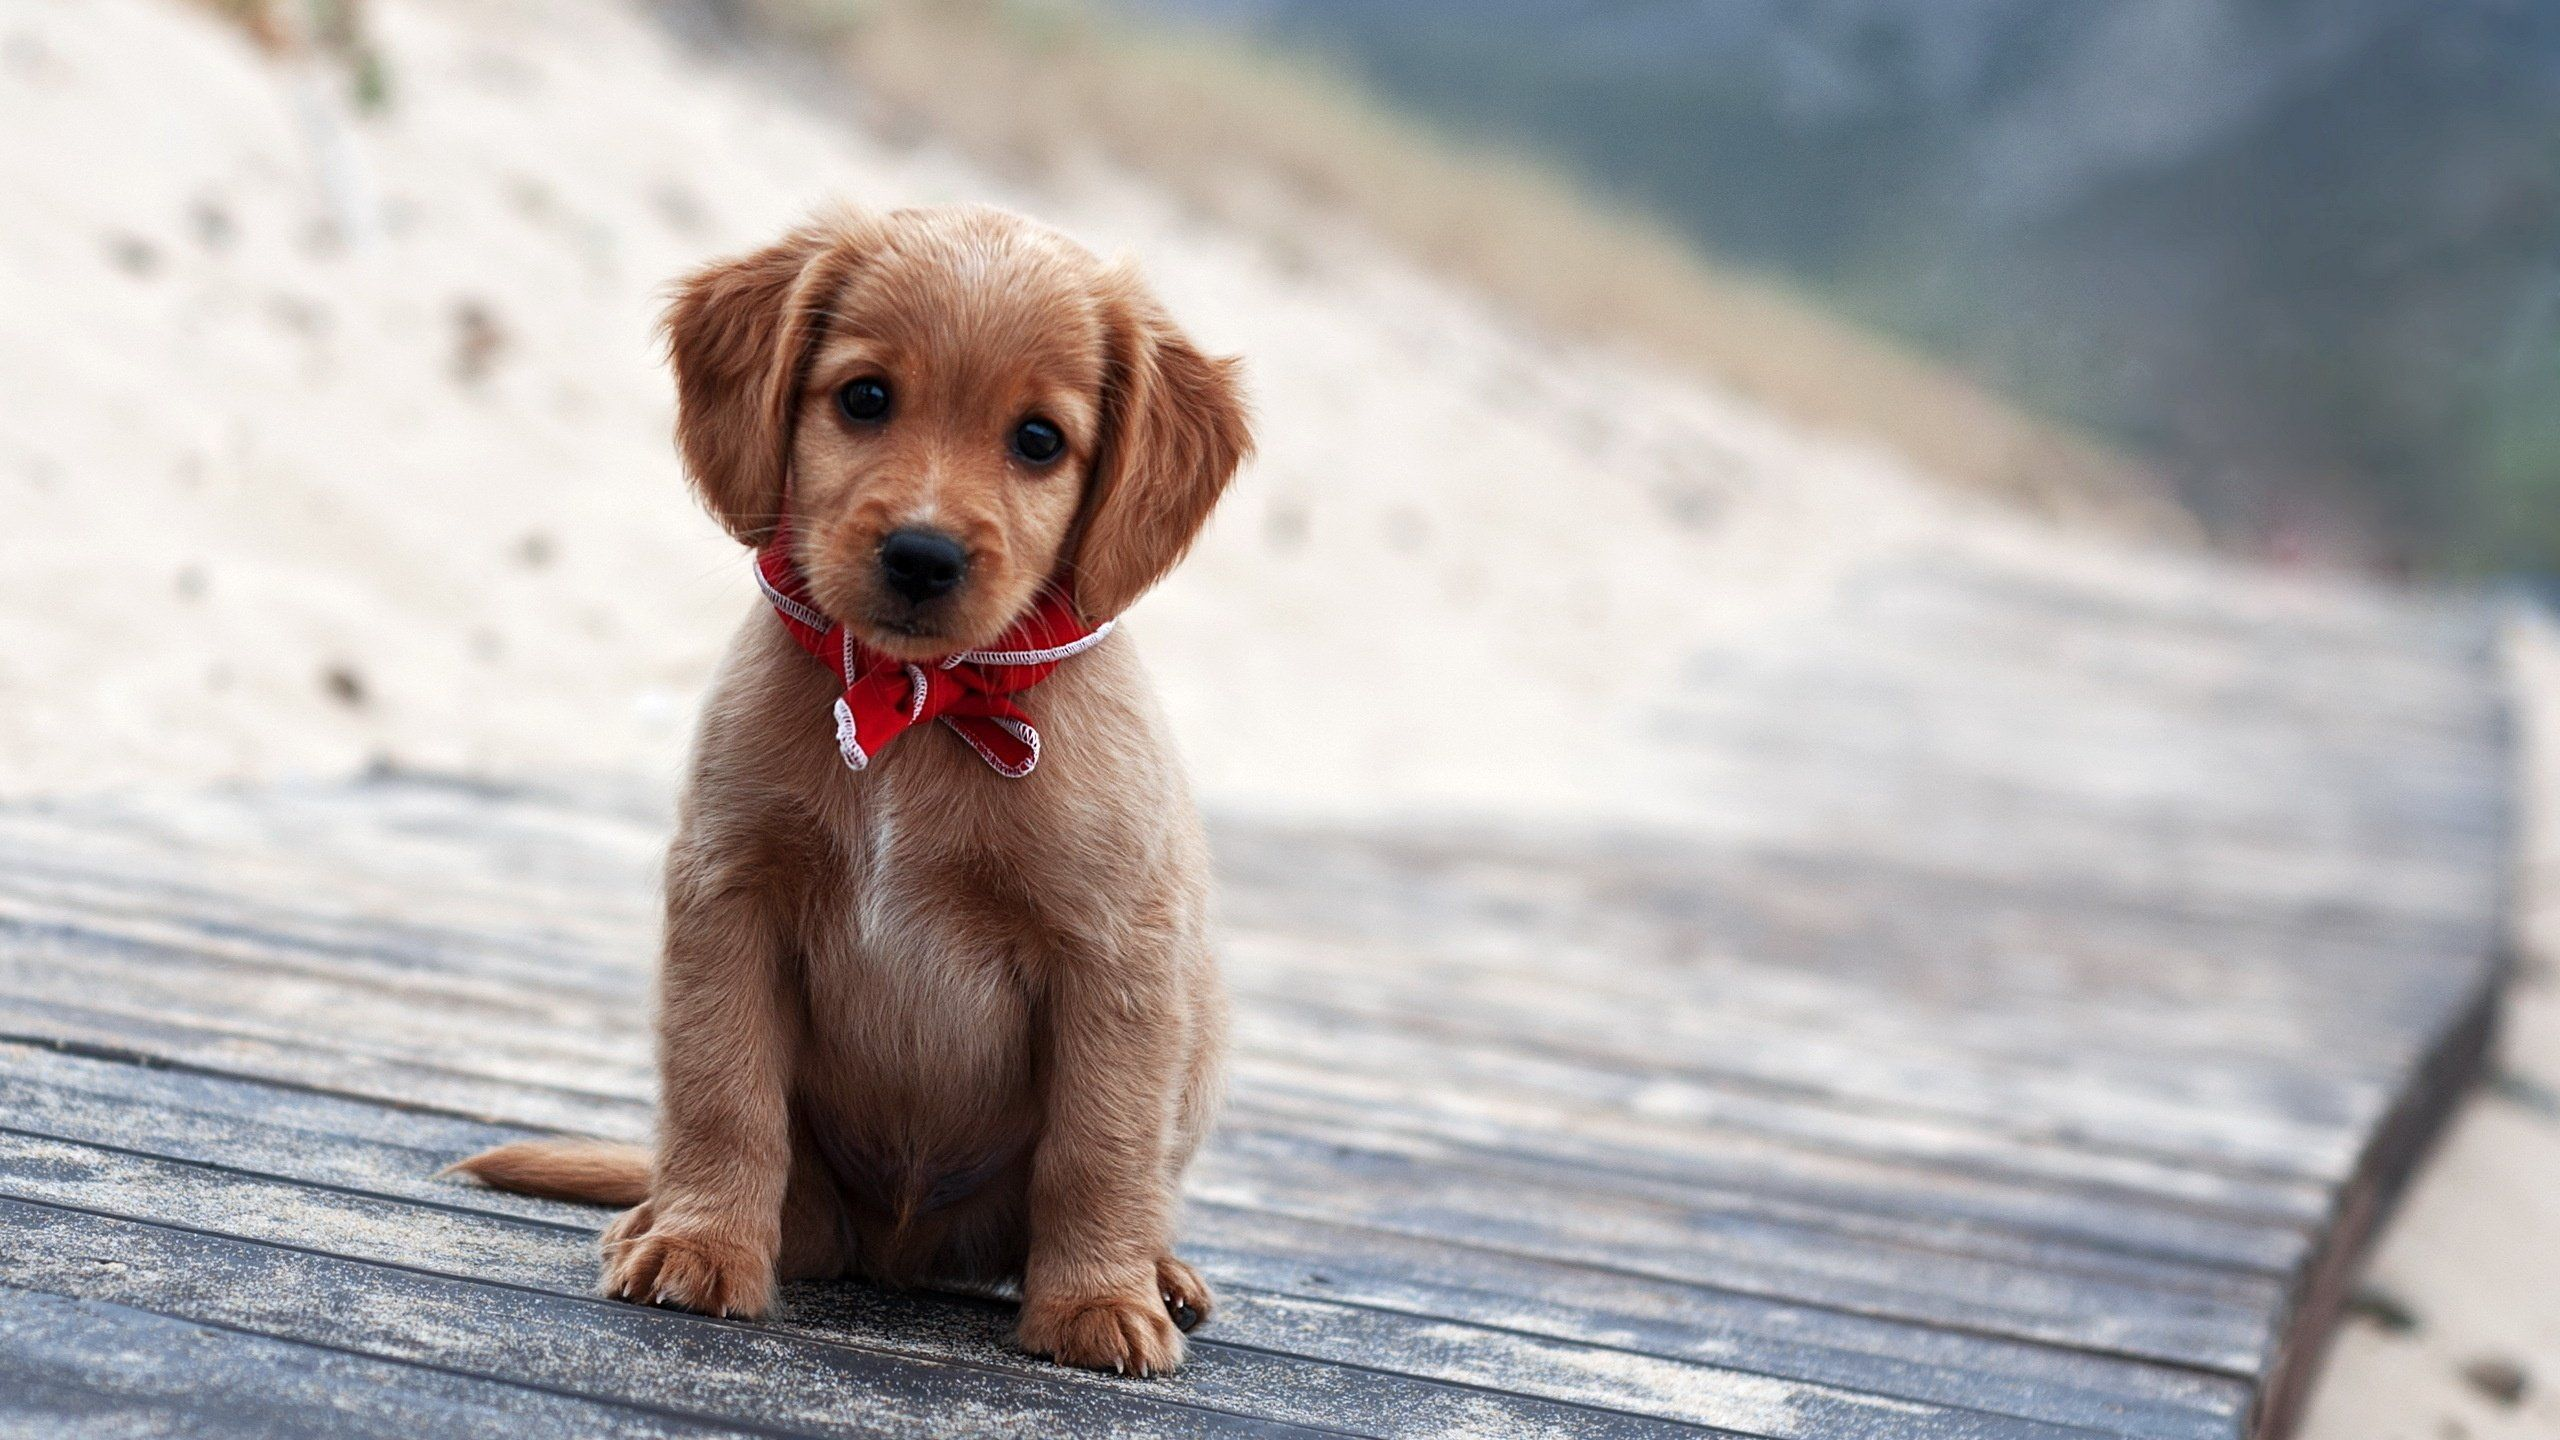 cute puppies wallpapers for mobile